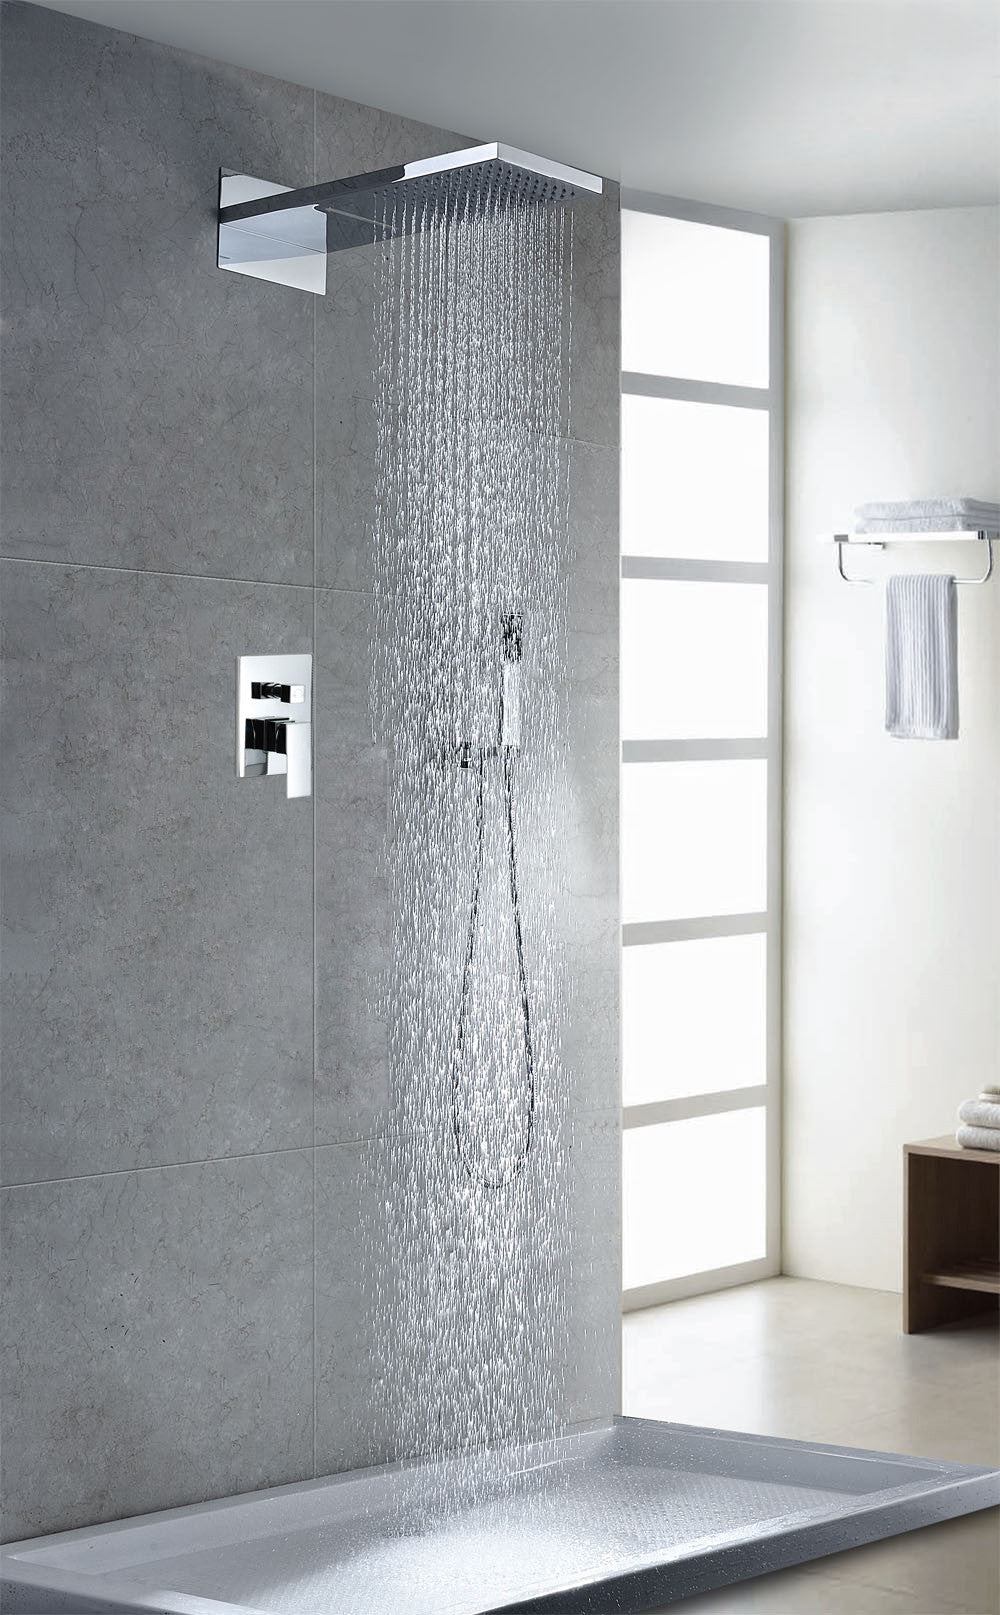 Sumerain Waterfall Shower System | S3047CW – RainShowersDirect.com